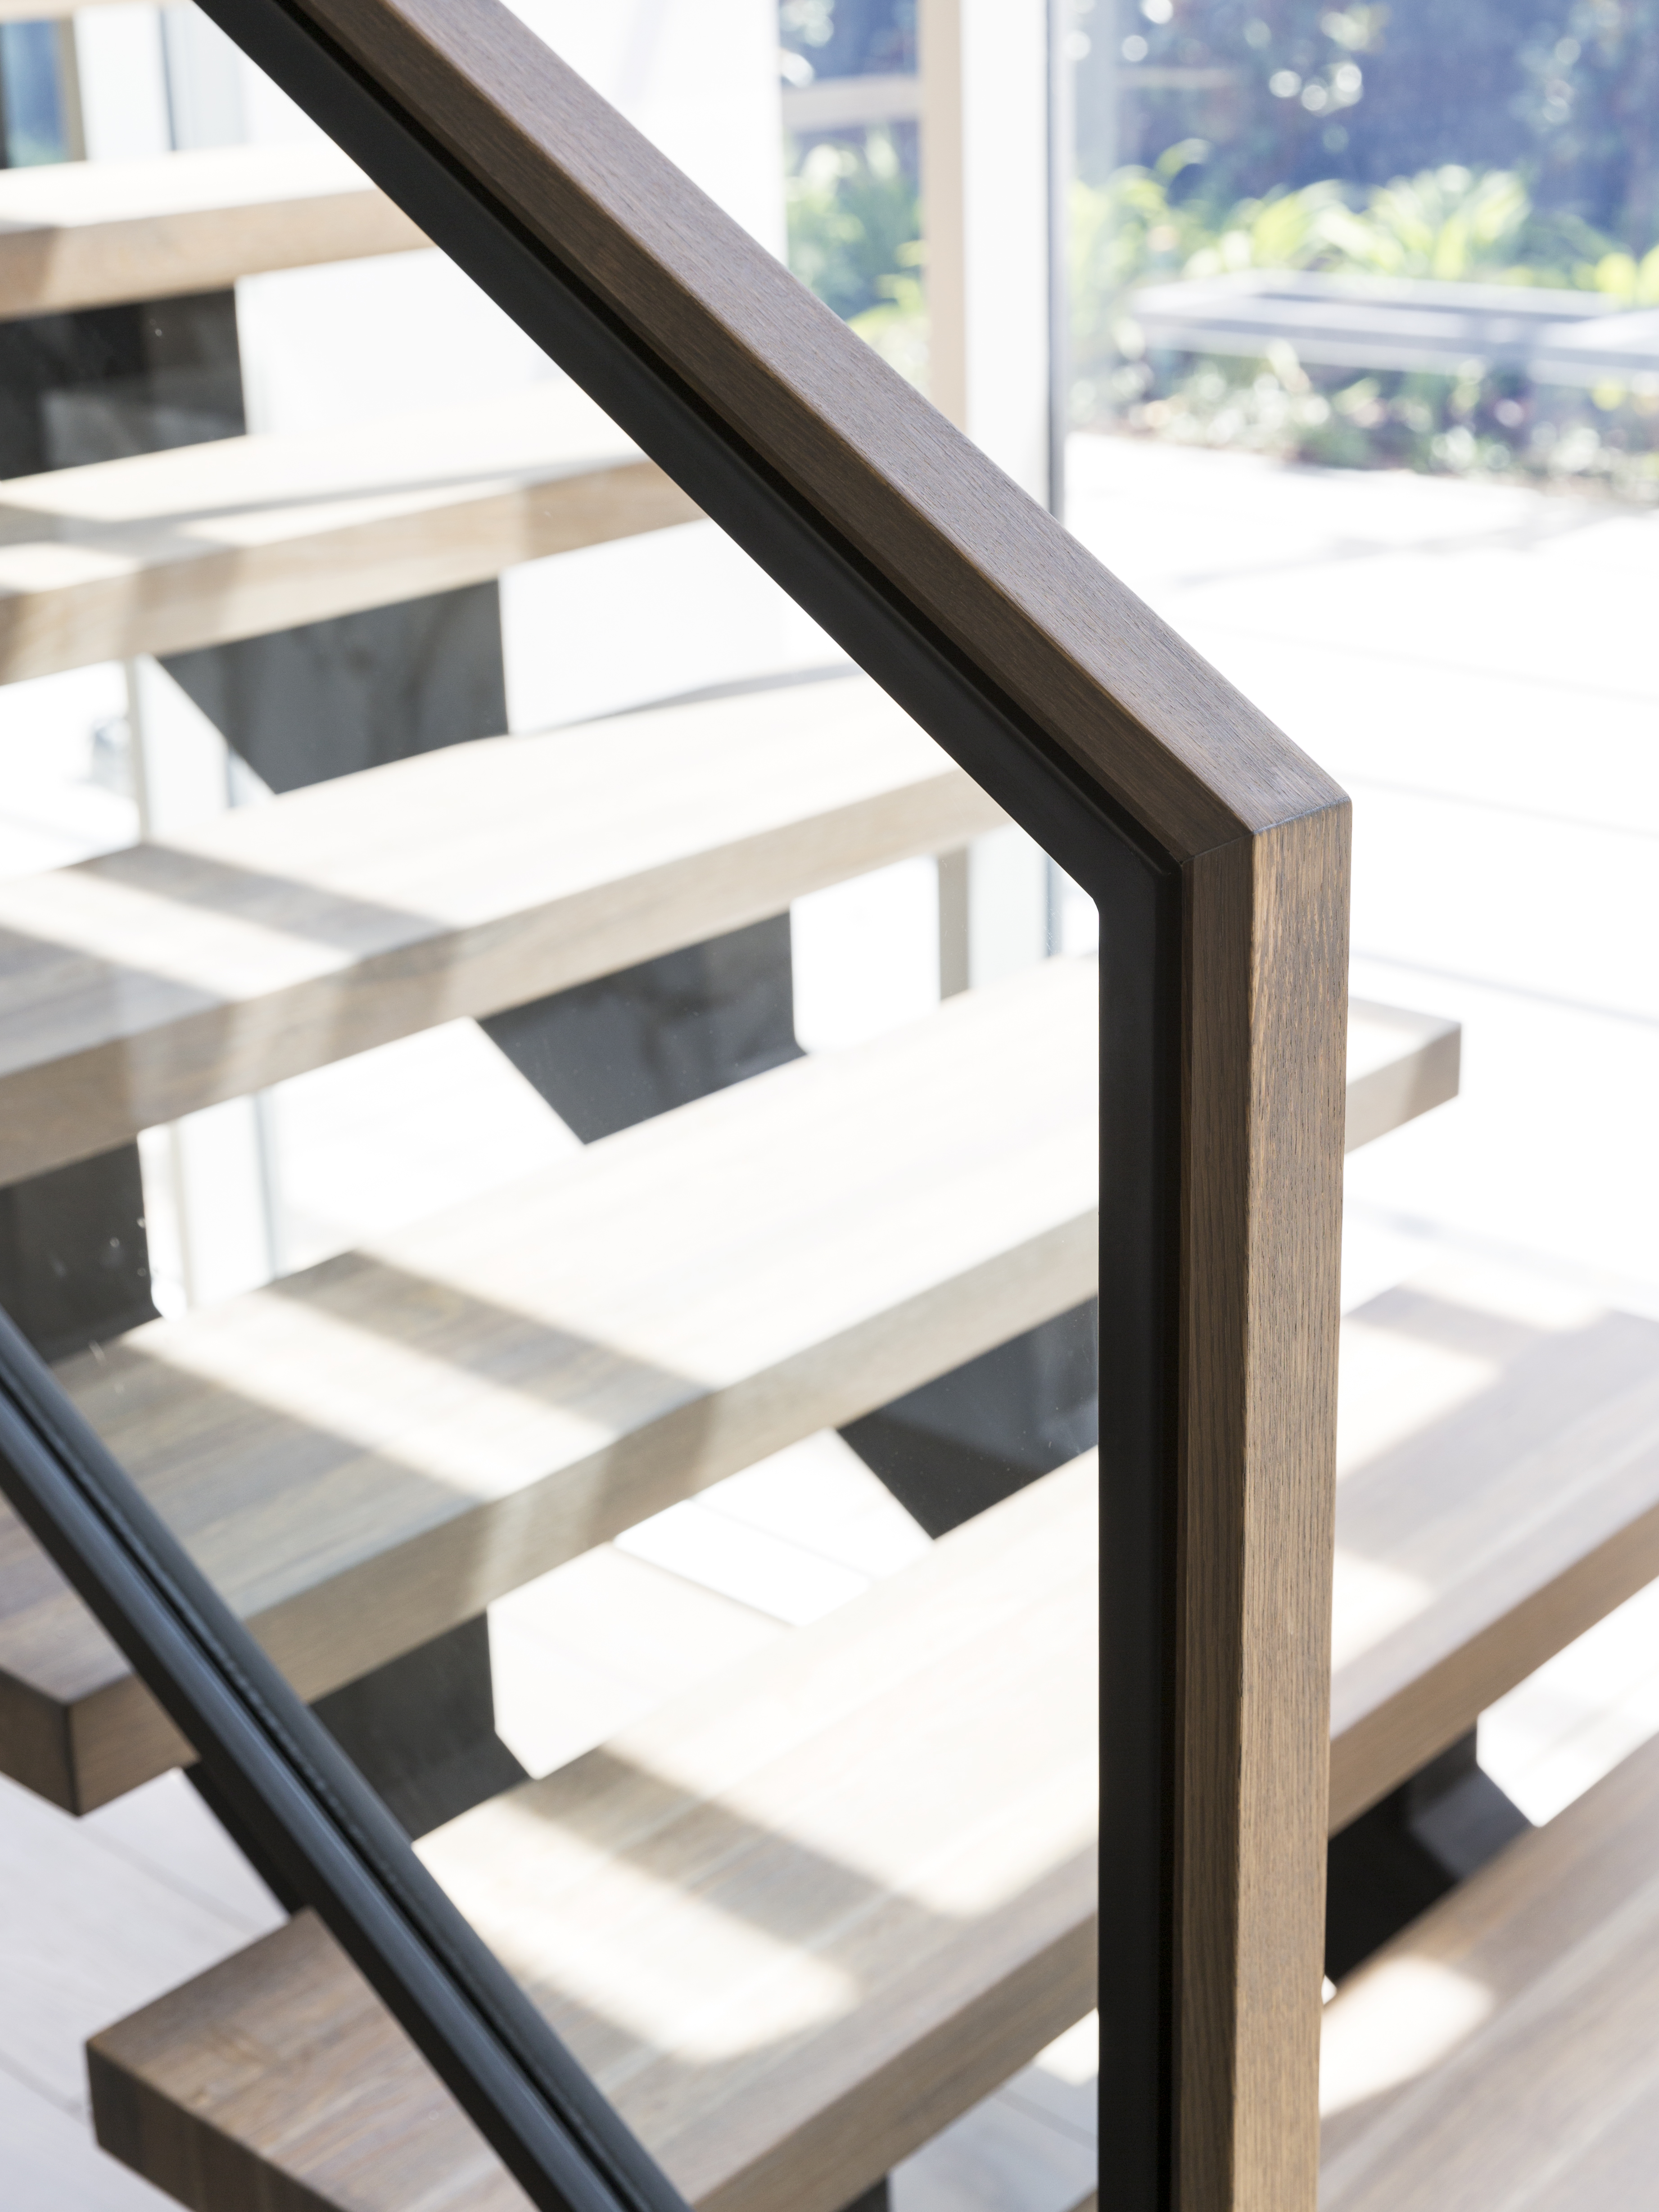 1000+ images about Stairs on Pinterest.